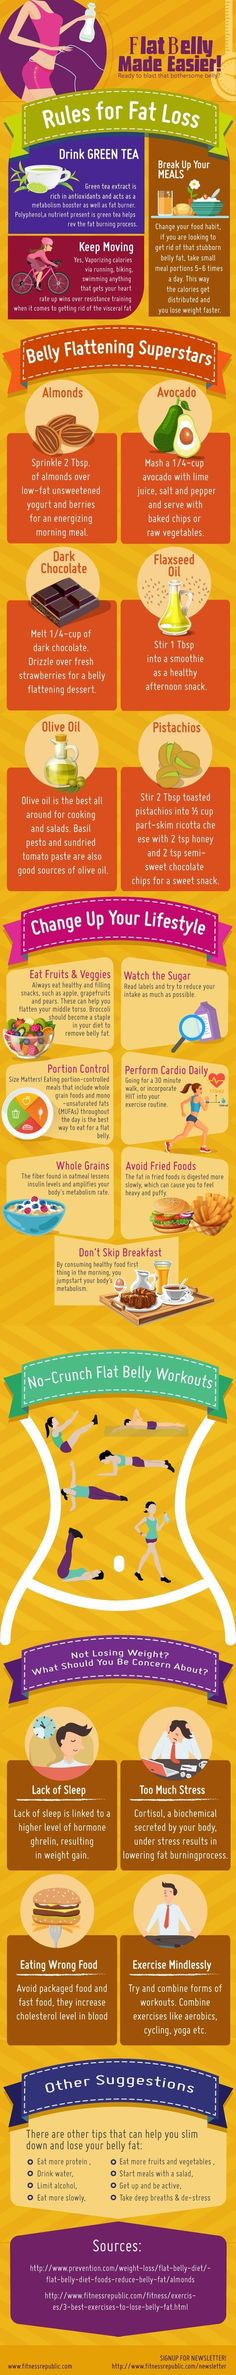 These 10 Graphs to Help You Lose Weight are THE BEST! I already STARTED LOSING WEIGHT as soon as I started following some of them! The results are AWESOME! I'm so happy I found this! Definitely pinning for later!